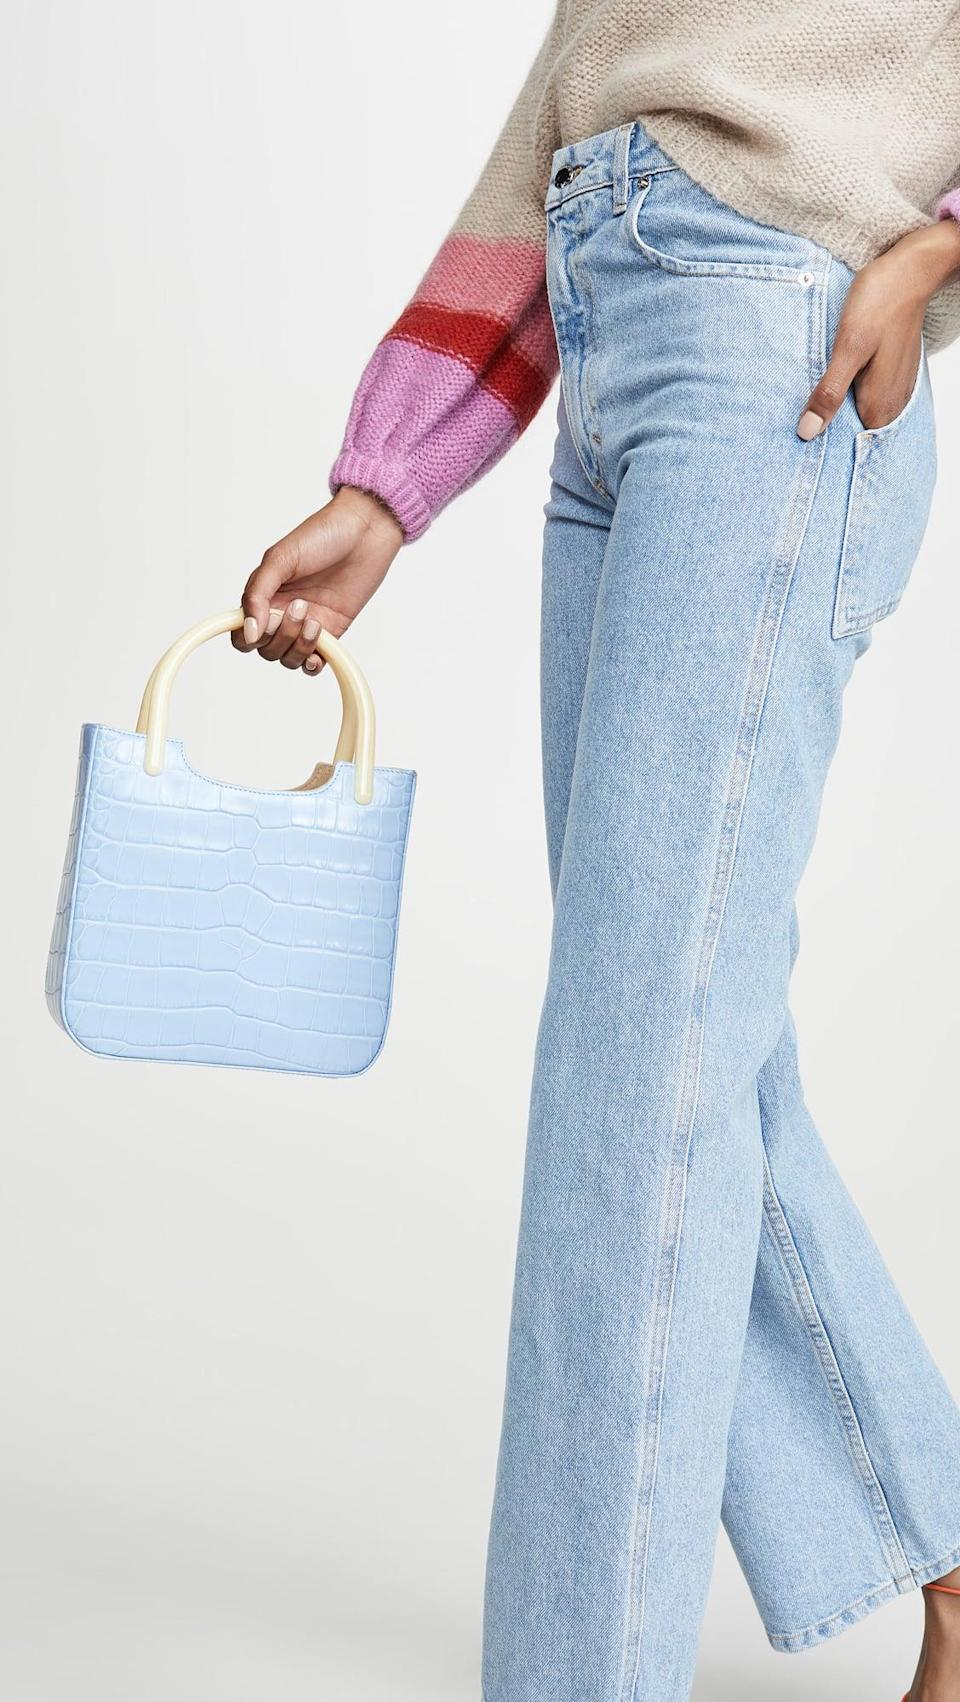 "<p>No one could refuse this adorable <a href=""https://www.popsugar.com/buy/Far-Eric-Bag-527765?p_name=By%20Far%20Eric%20Bag&retailer=shopbop.com&pid=527765&price=688&evar1=fab%3Aus&evar9=36291197&evar98=https%3A%2F%2Fwww.popsugar.com%2Fphoto-gallery%2F36291197%2Fimage%2F46983069%2FBy-Far-Eric-Bag&list1=shopping%2Choliday%2Cwinter%2Cgift%20guide%2Cwinter%20fashion%2Choliday%20fashion%2Cfashion%20gifts&prop13=api&pdata=1"" rel=""nofollow noopener"" class=""link rapid-noclick-resp"" target=""_blank"" data-ylk=""slk:By Far Eric Bag"">By Far Eric Bag</a> ($688).</p>"